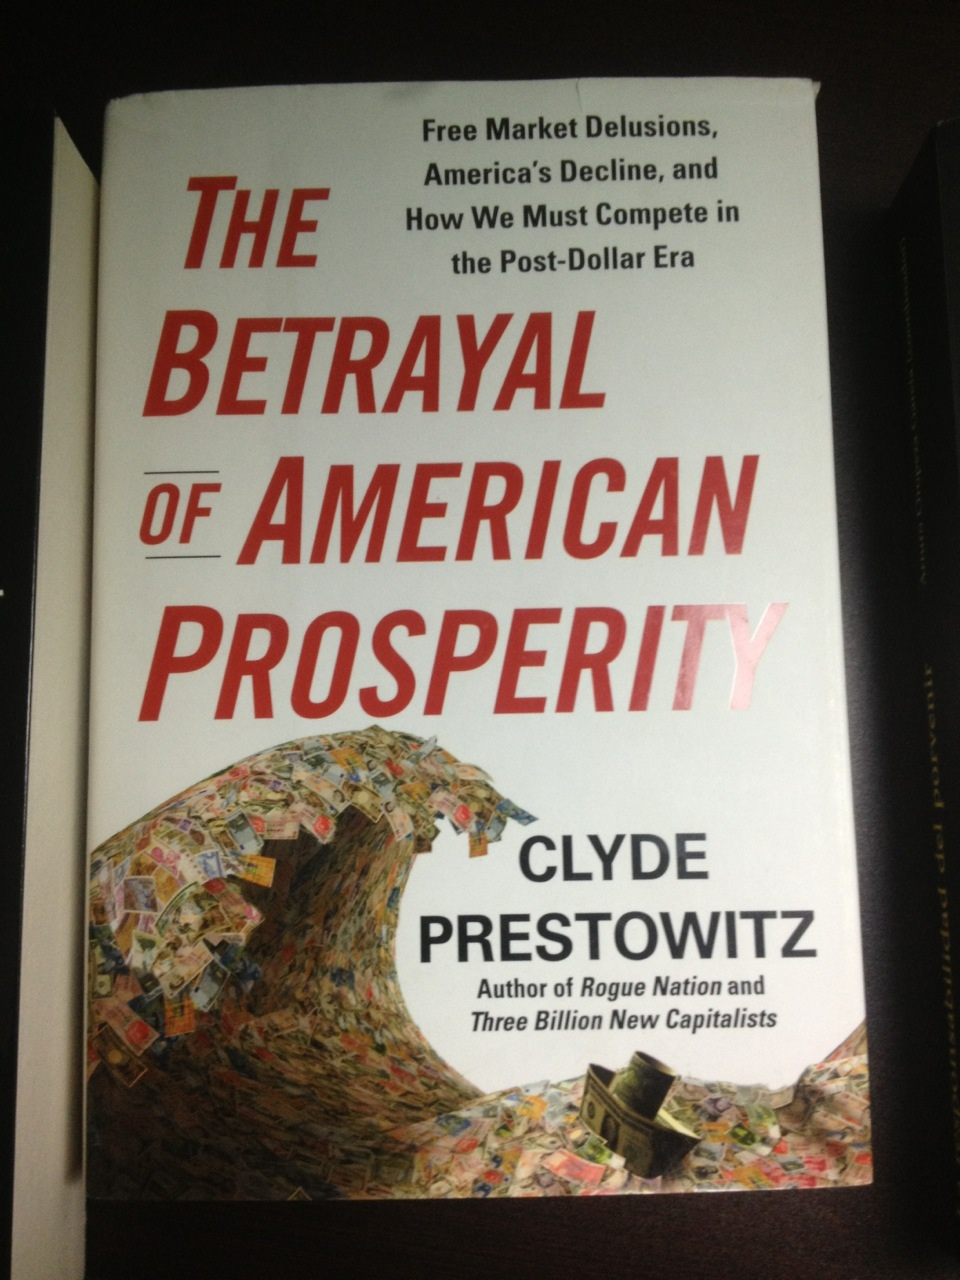 The Betrayal of American Prosperity by Clyde Prestowitz.